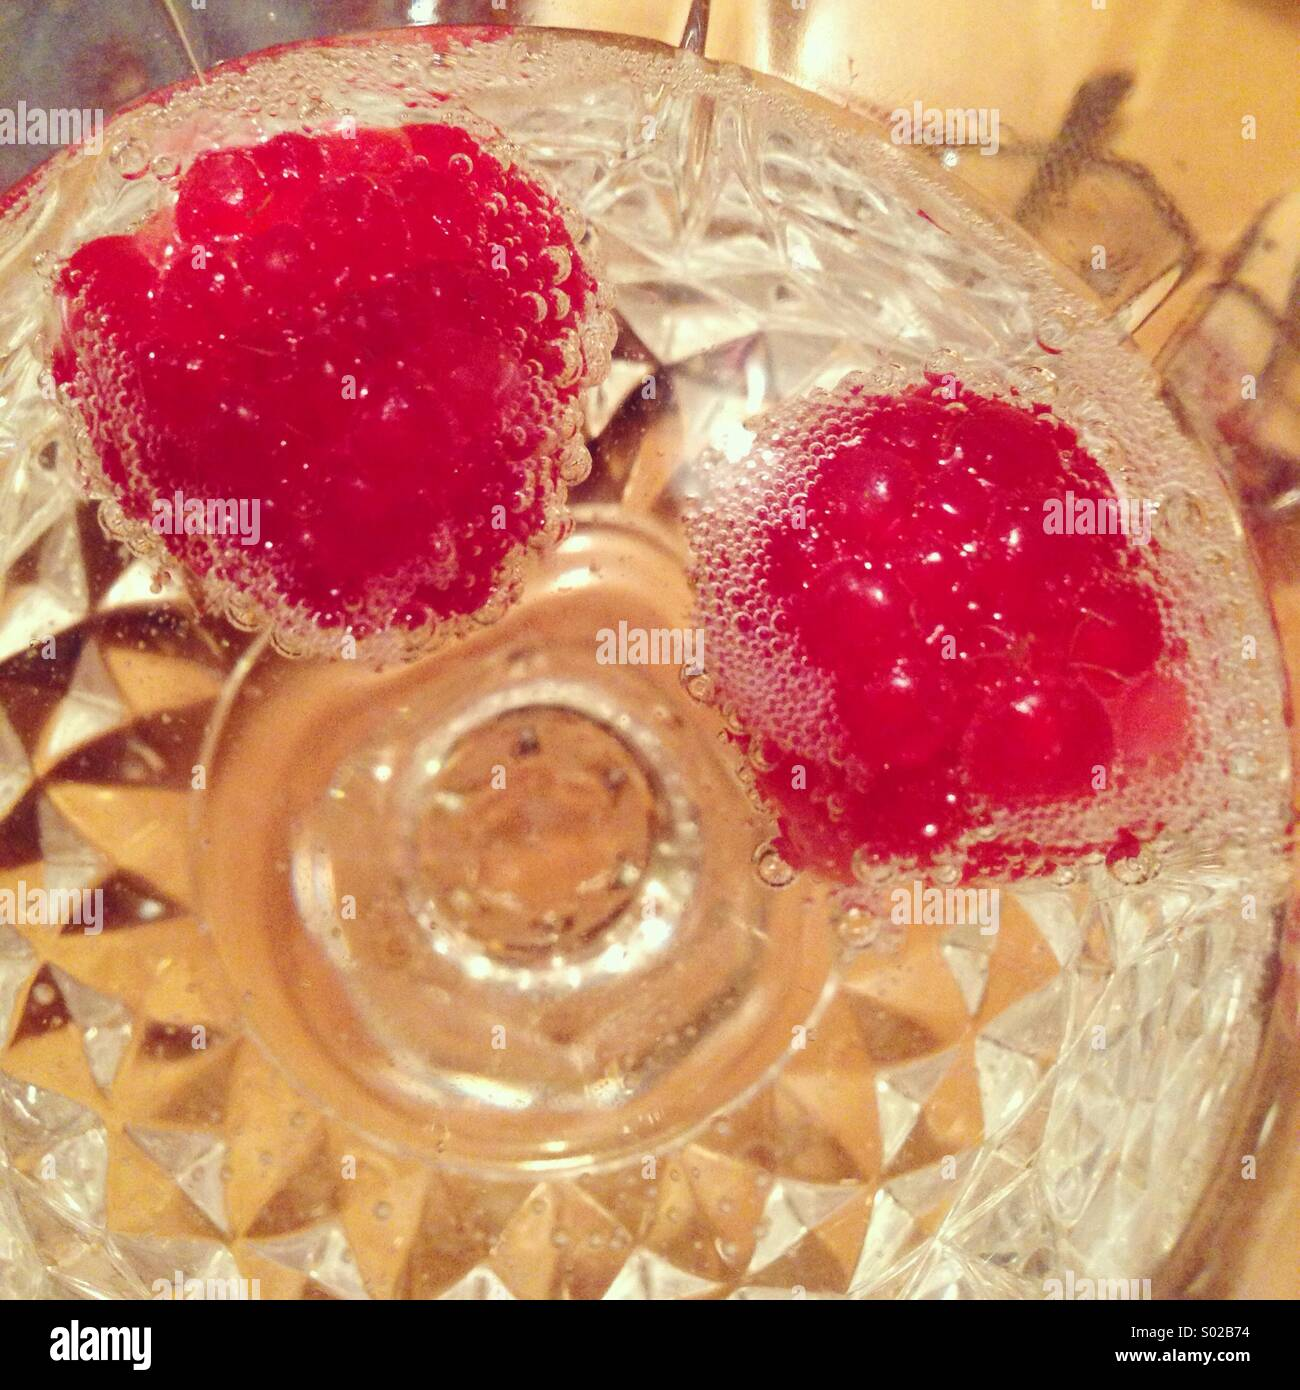 Raspberries in champagne - Stock Image